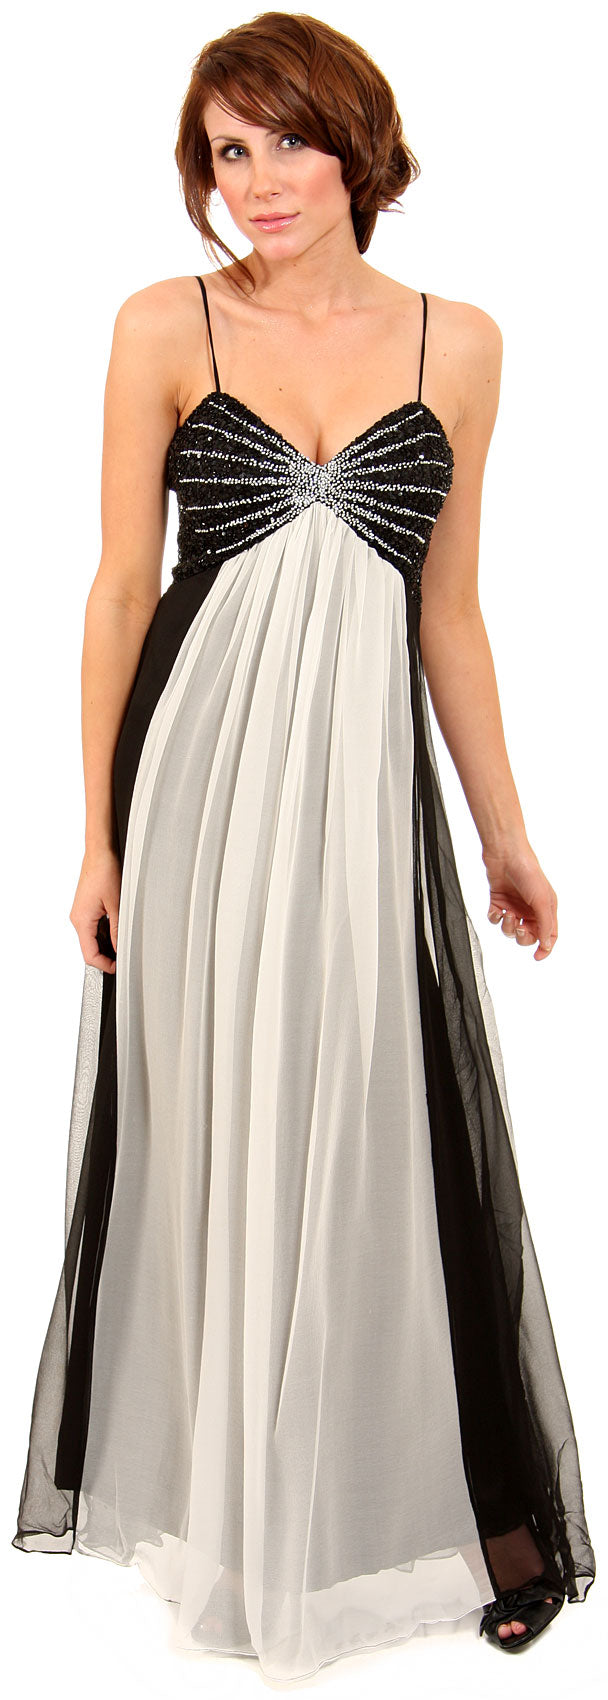 Main image of Two Tone Butterfly Top Formal Party Dress